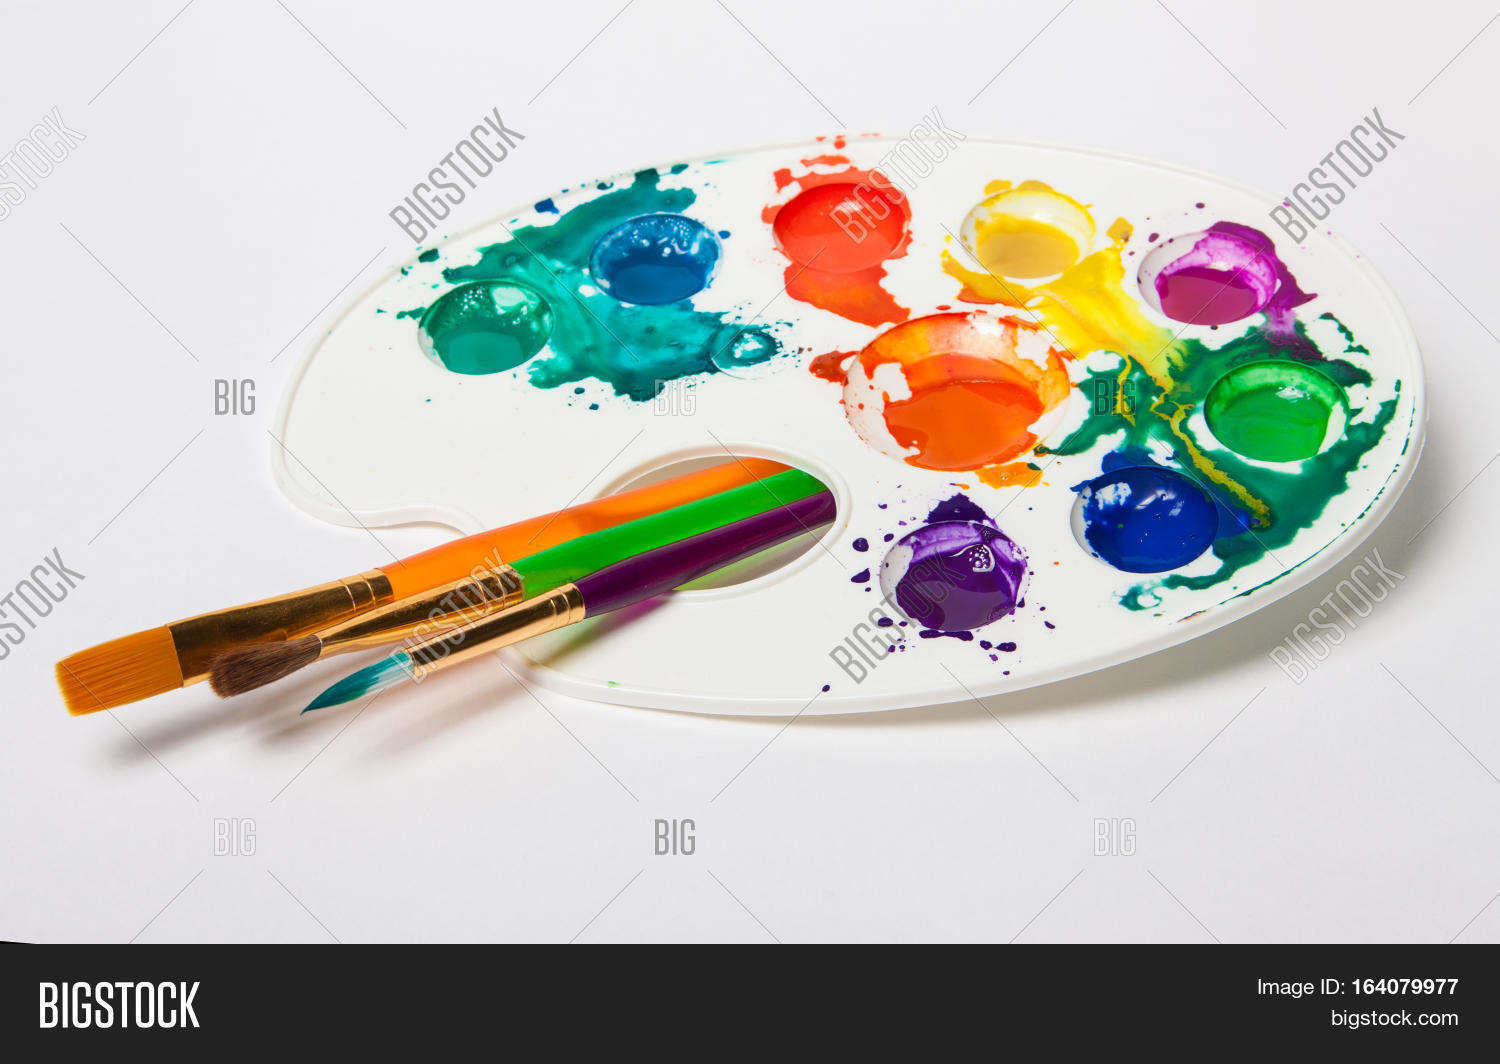 paint,palette,brush,art,isolated,artist,background,white,wooden,brushes,color,paintbrush,painter,equipment,colorful,oil,education,artwork,creativity,study,learning,pallet,tool,portrait,watercolor,acrylic,object,studio,nobody,canvas,design,artistic,green,pallette,vintage,closeup,yellow,water,bright,palet,drawing,work,creative,wood,pallete,childhood,dirty,school,wet